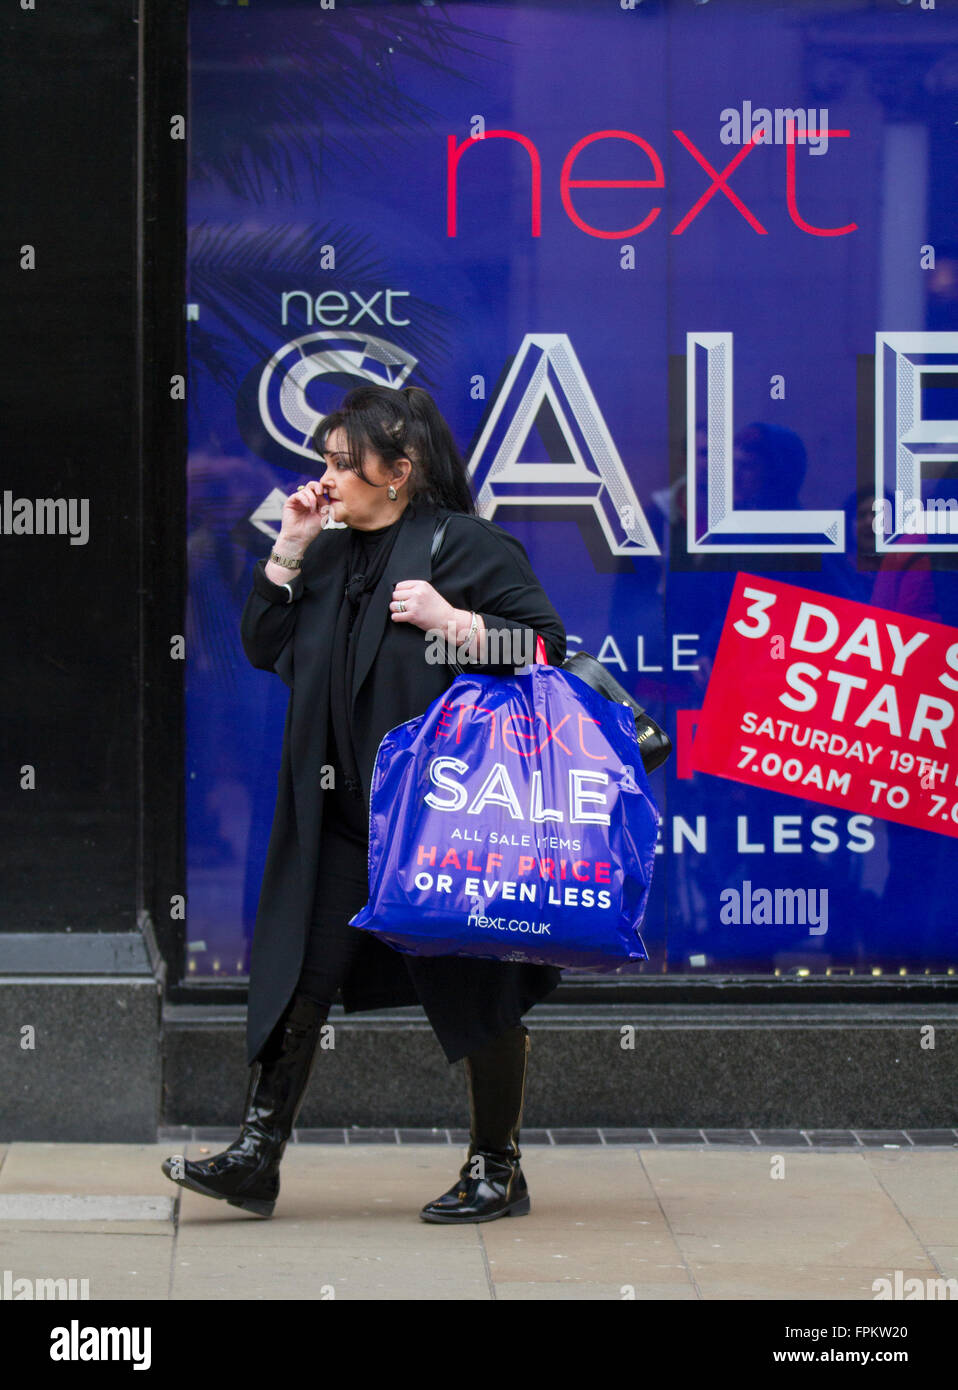 Woman carrying goods, in a shopping bag,  purchased from Next clothing shop Half Price Sale Event in Chester, Cheshire, - Stock Image